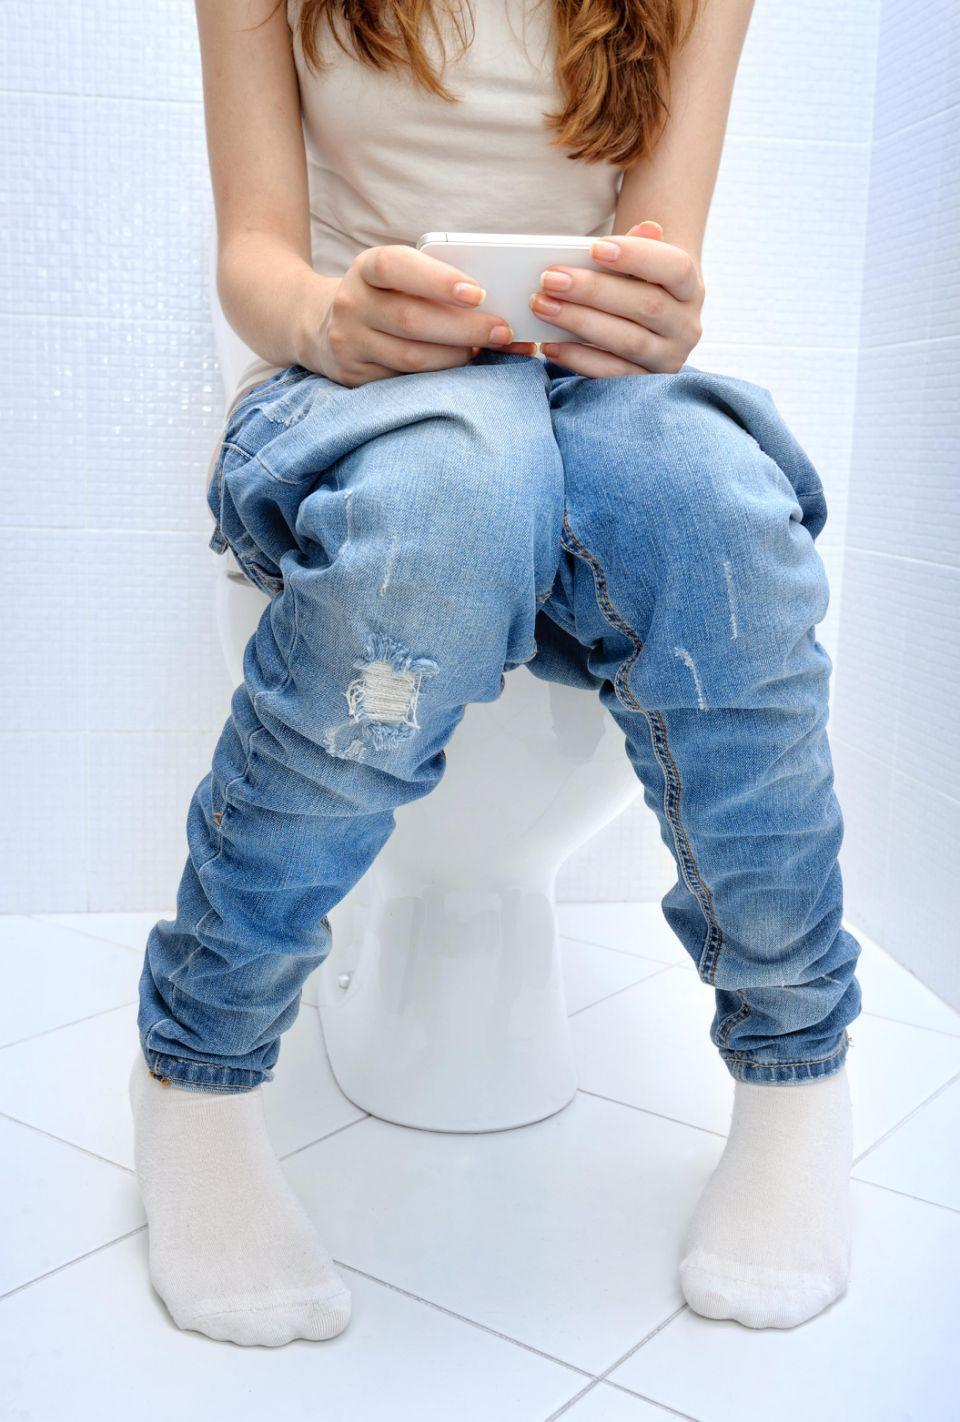 Mobile phones are one of the worst culprits for spreading germs. Photo: Getty